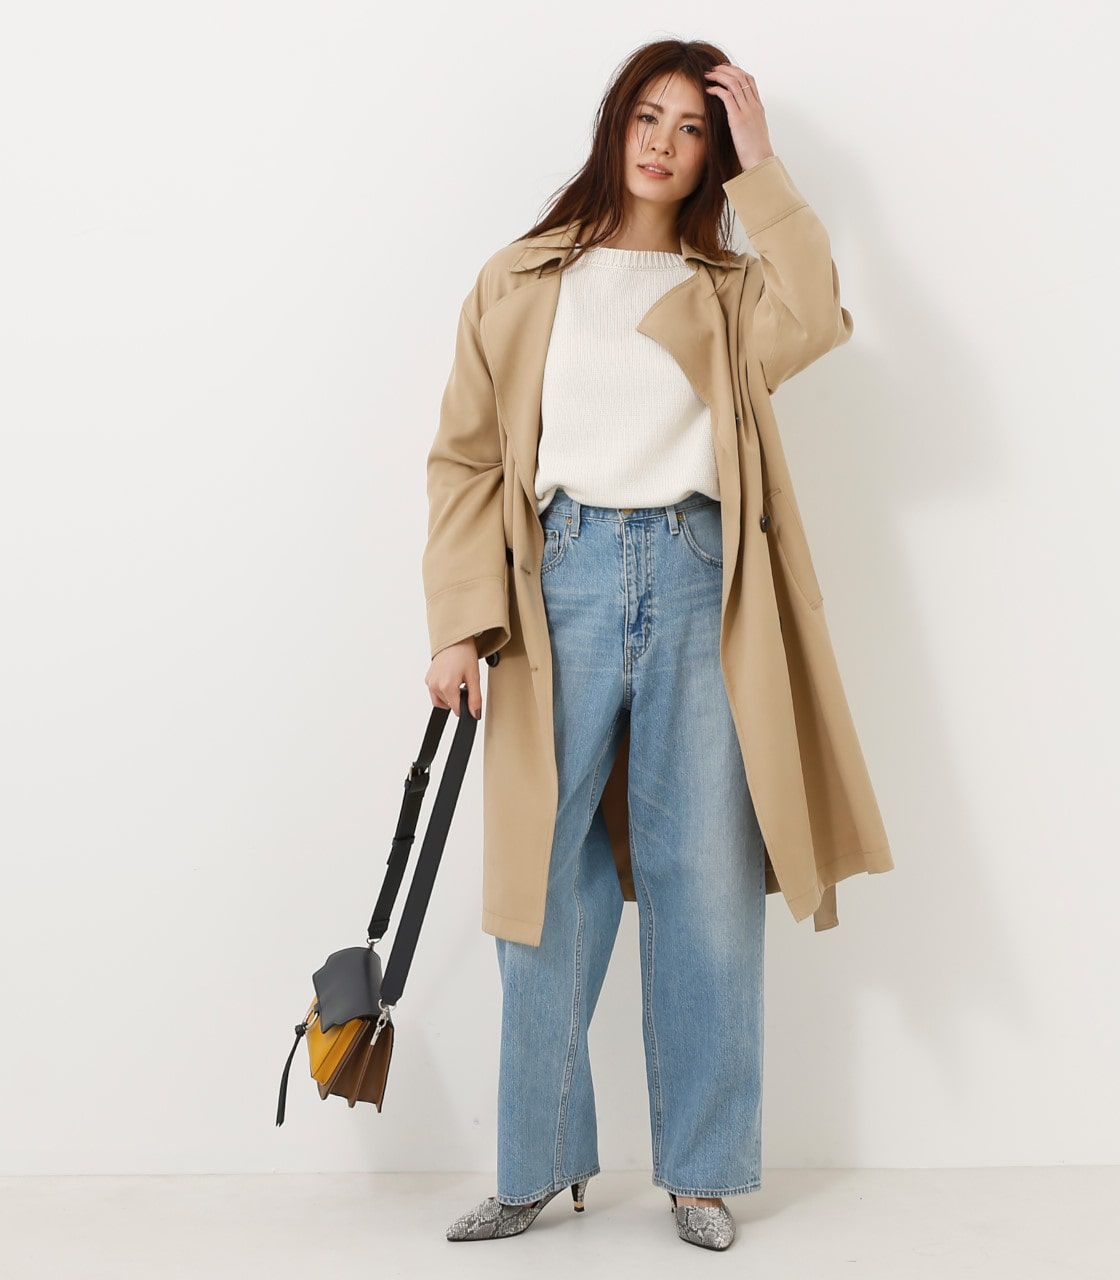 【AZUL BY MOUSSY】スプリングトレンチコート 詳細画像 BEG 2